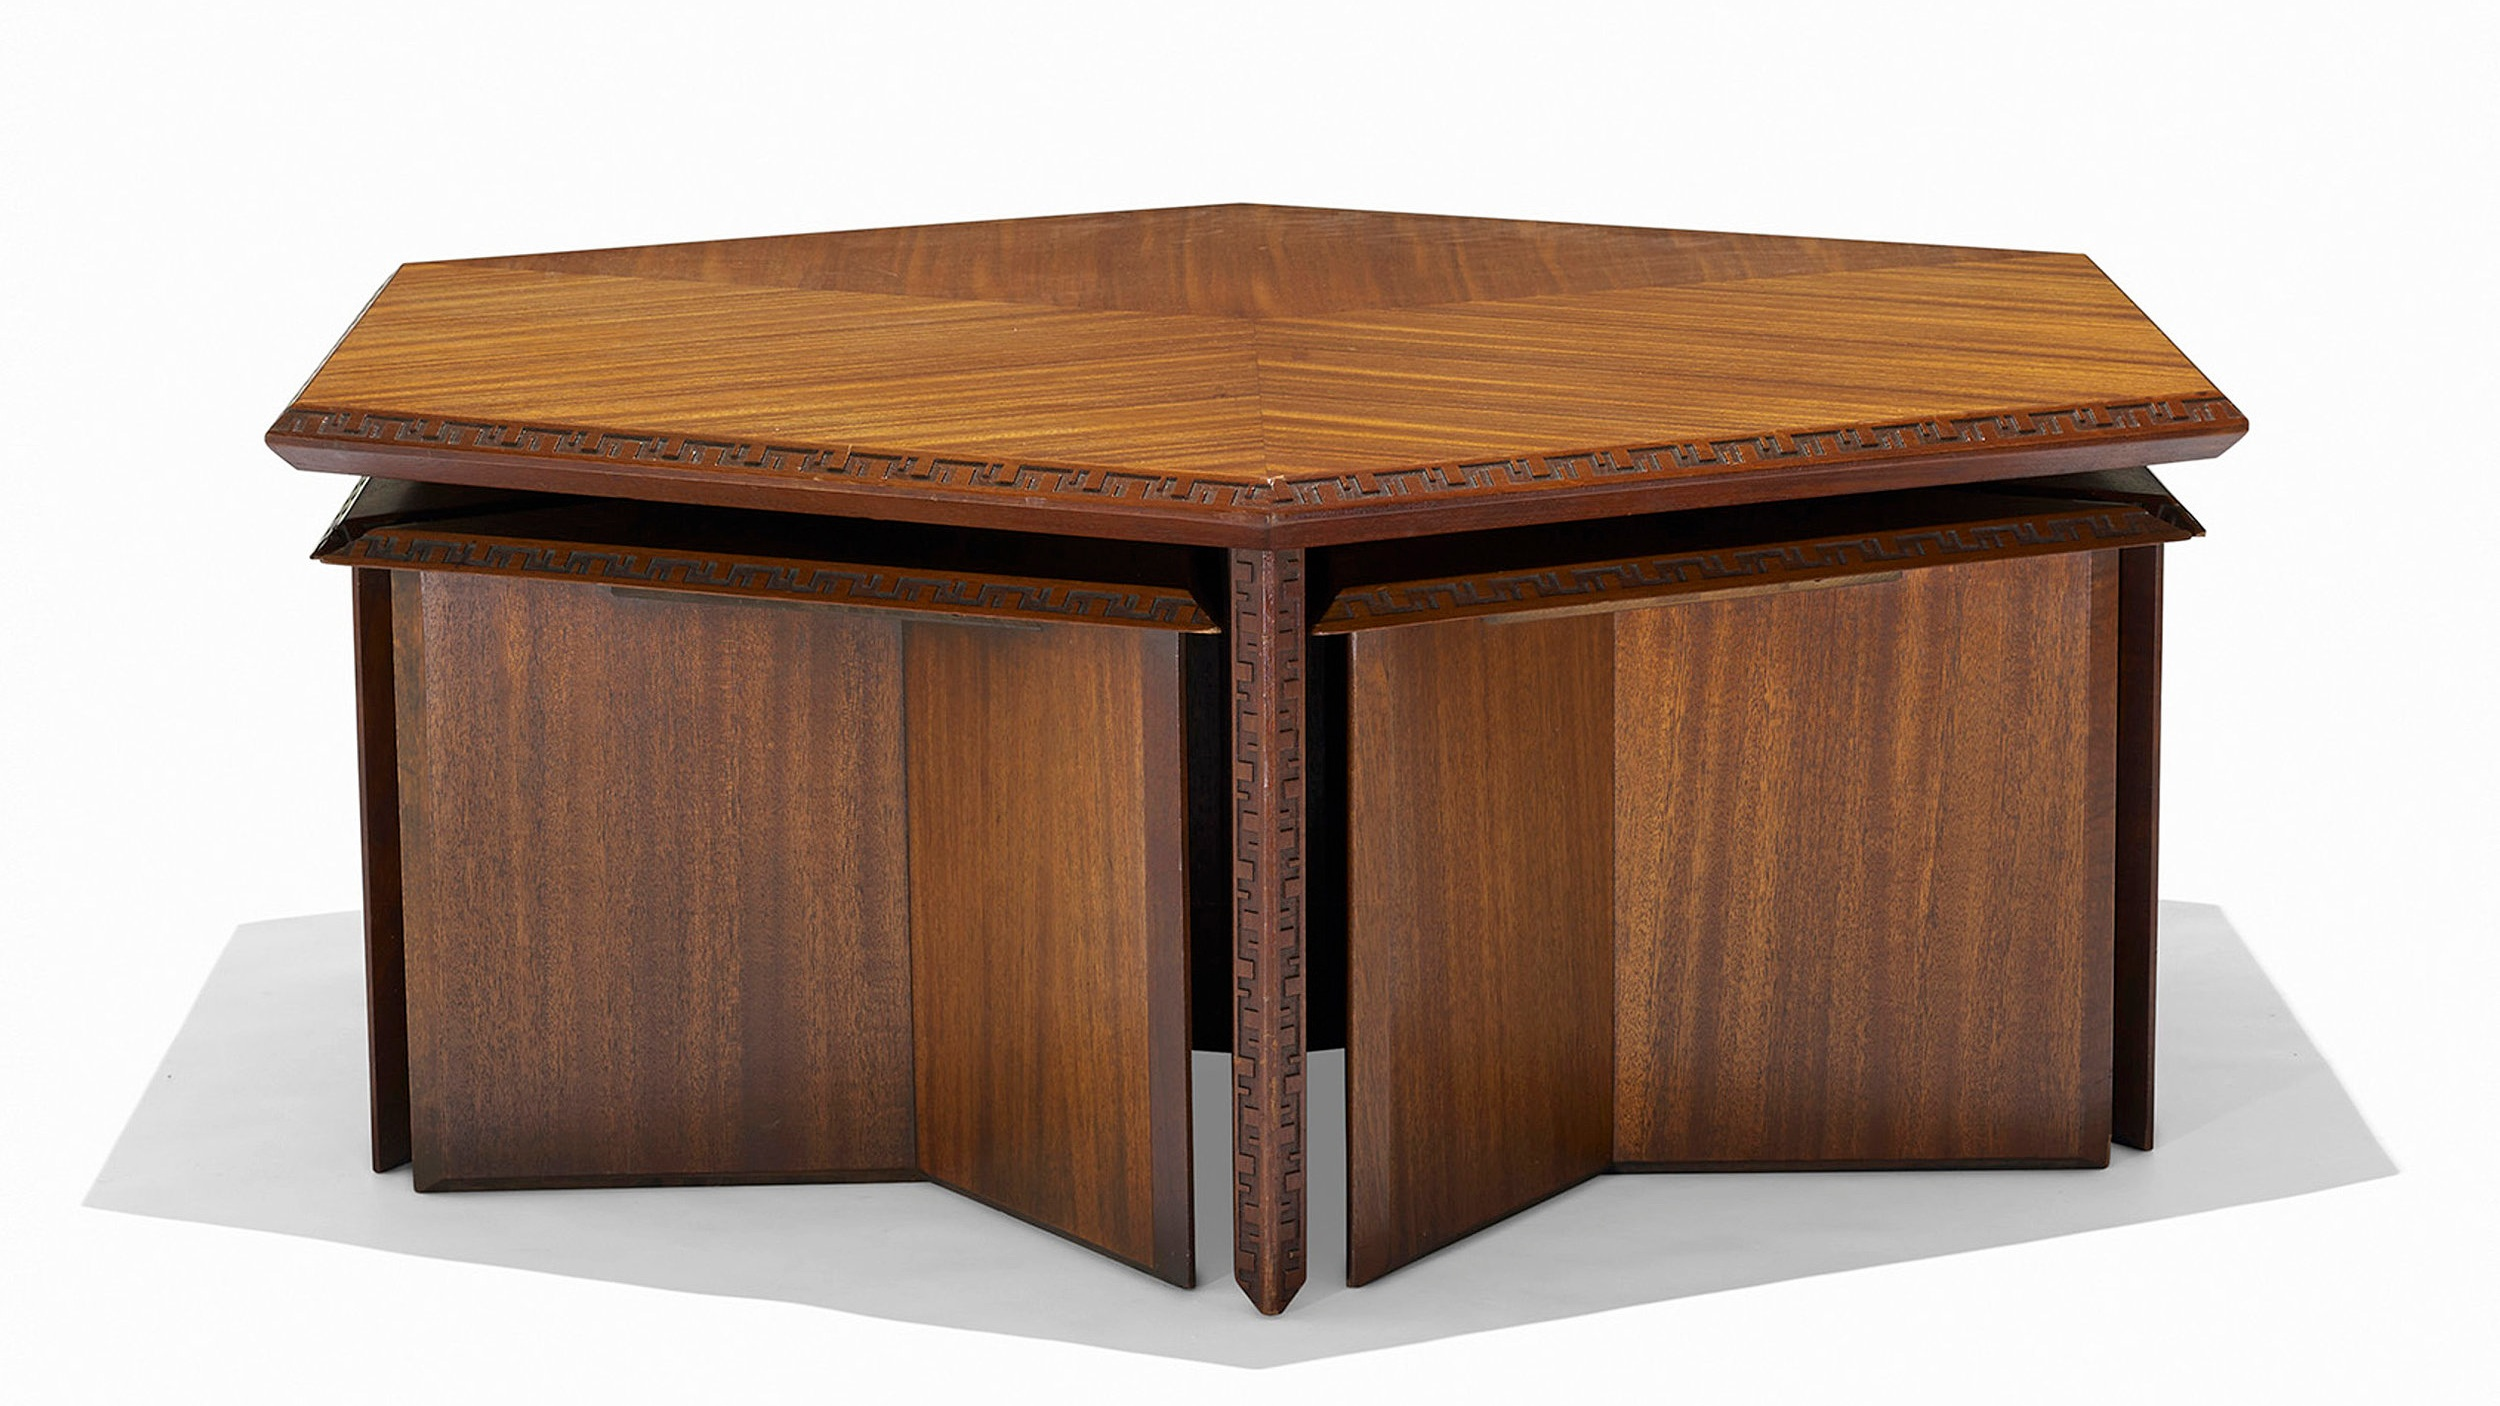 243_2_modern_design_march_2013_frank_lloyd_wright_table_model_453_c_and_six_stools_model_452_a__wright_auction.jpg